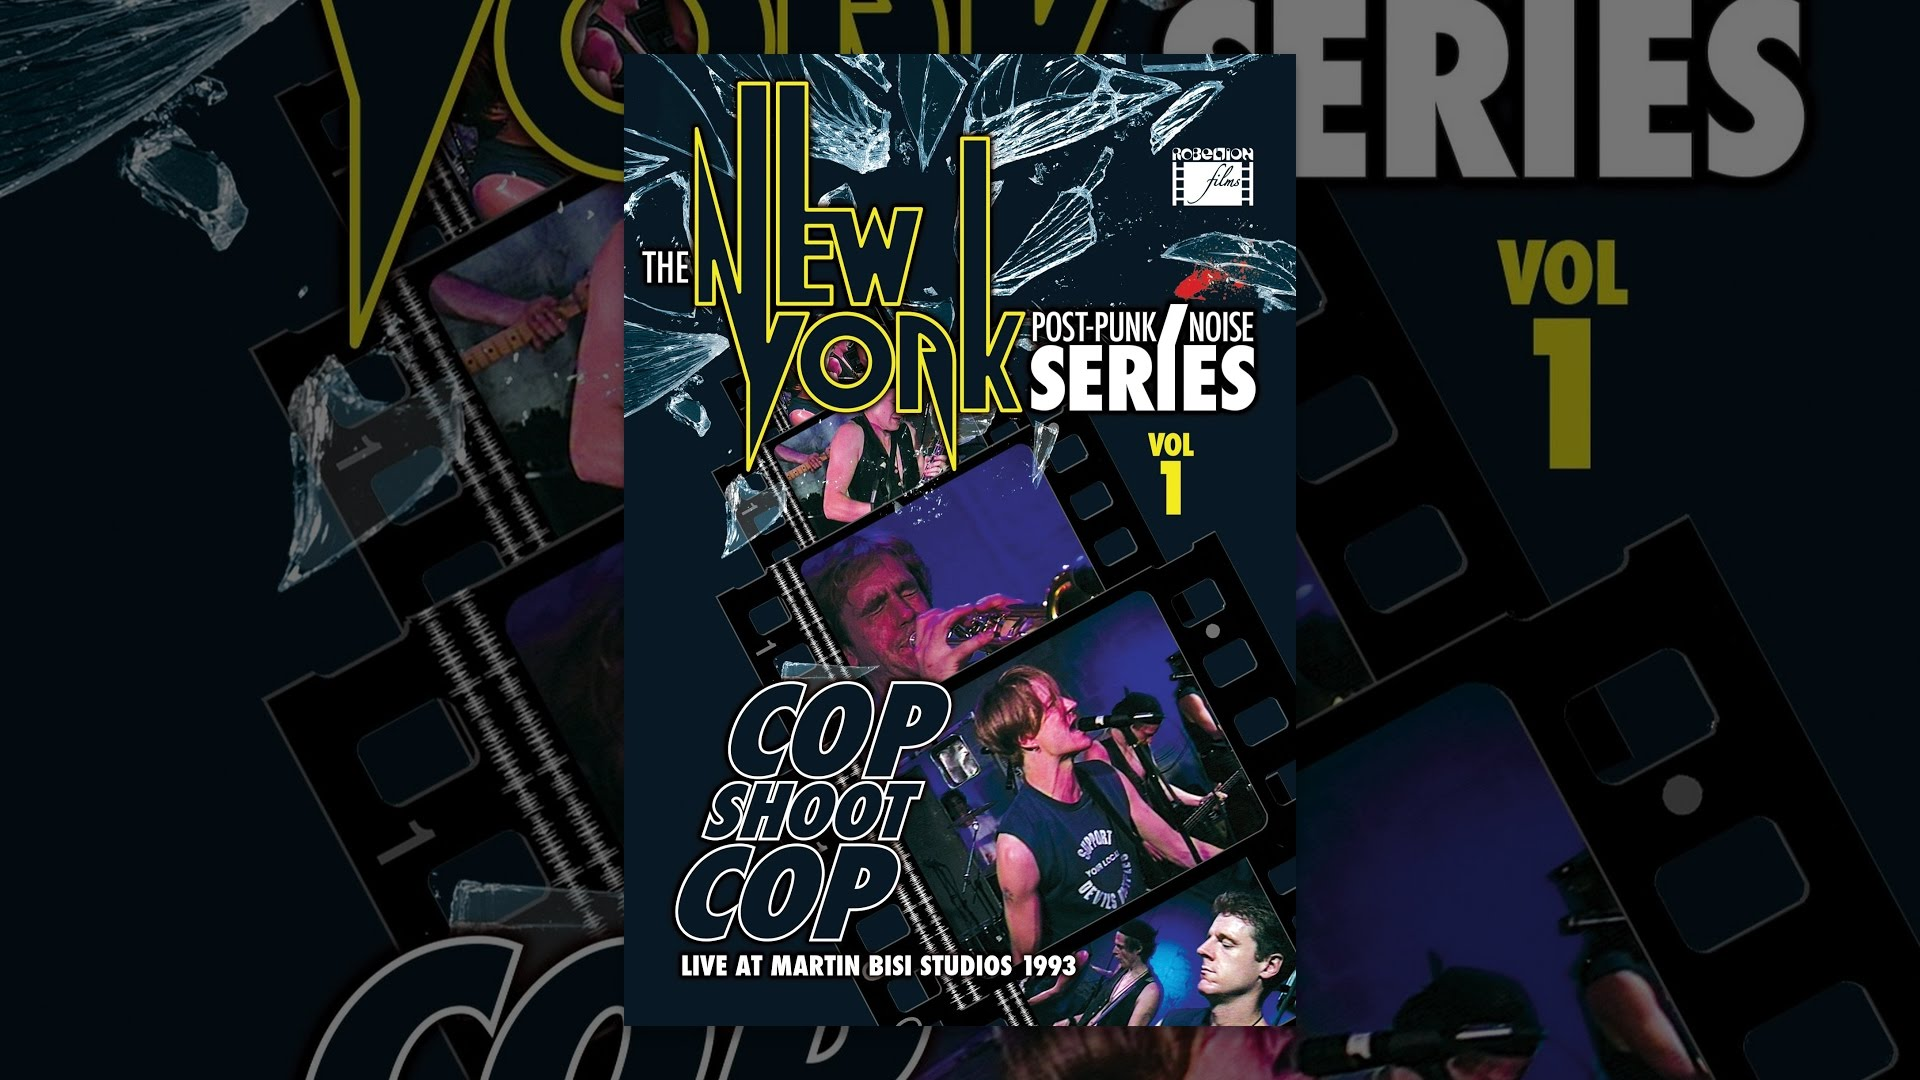 Cop Shoot Cop - The New York Post Punk/noise Series Volume 1